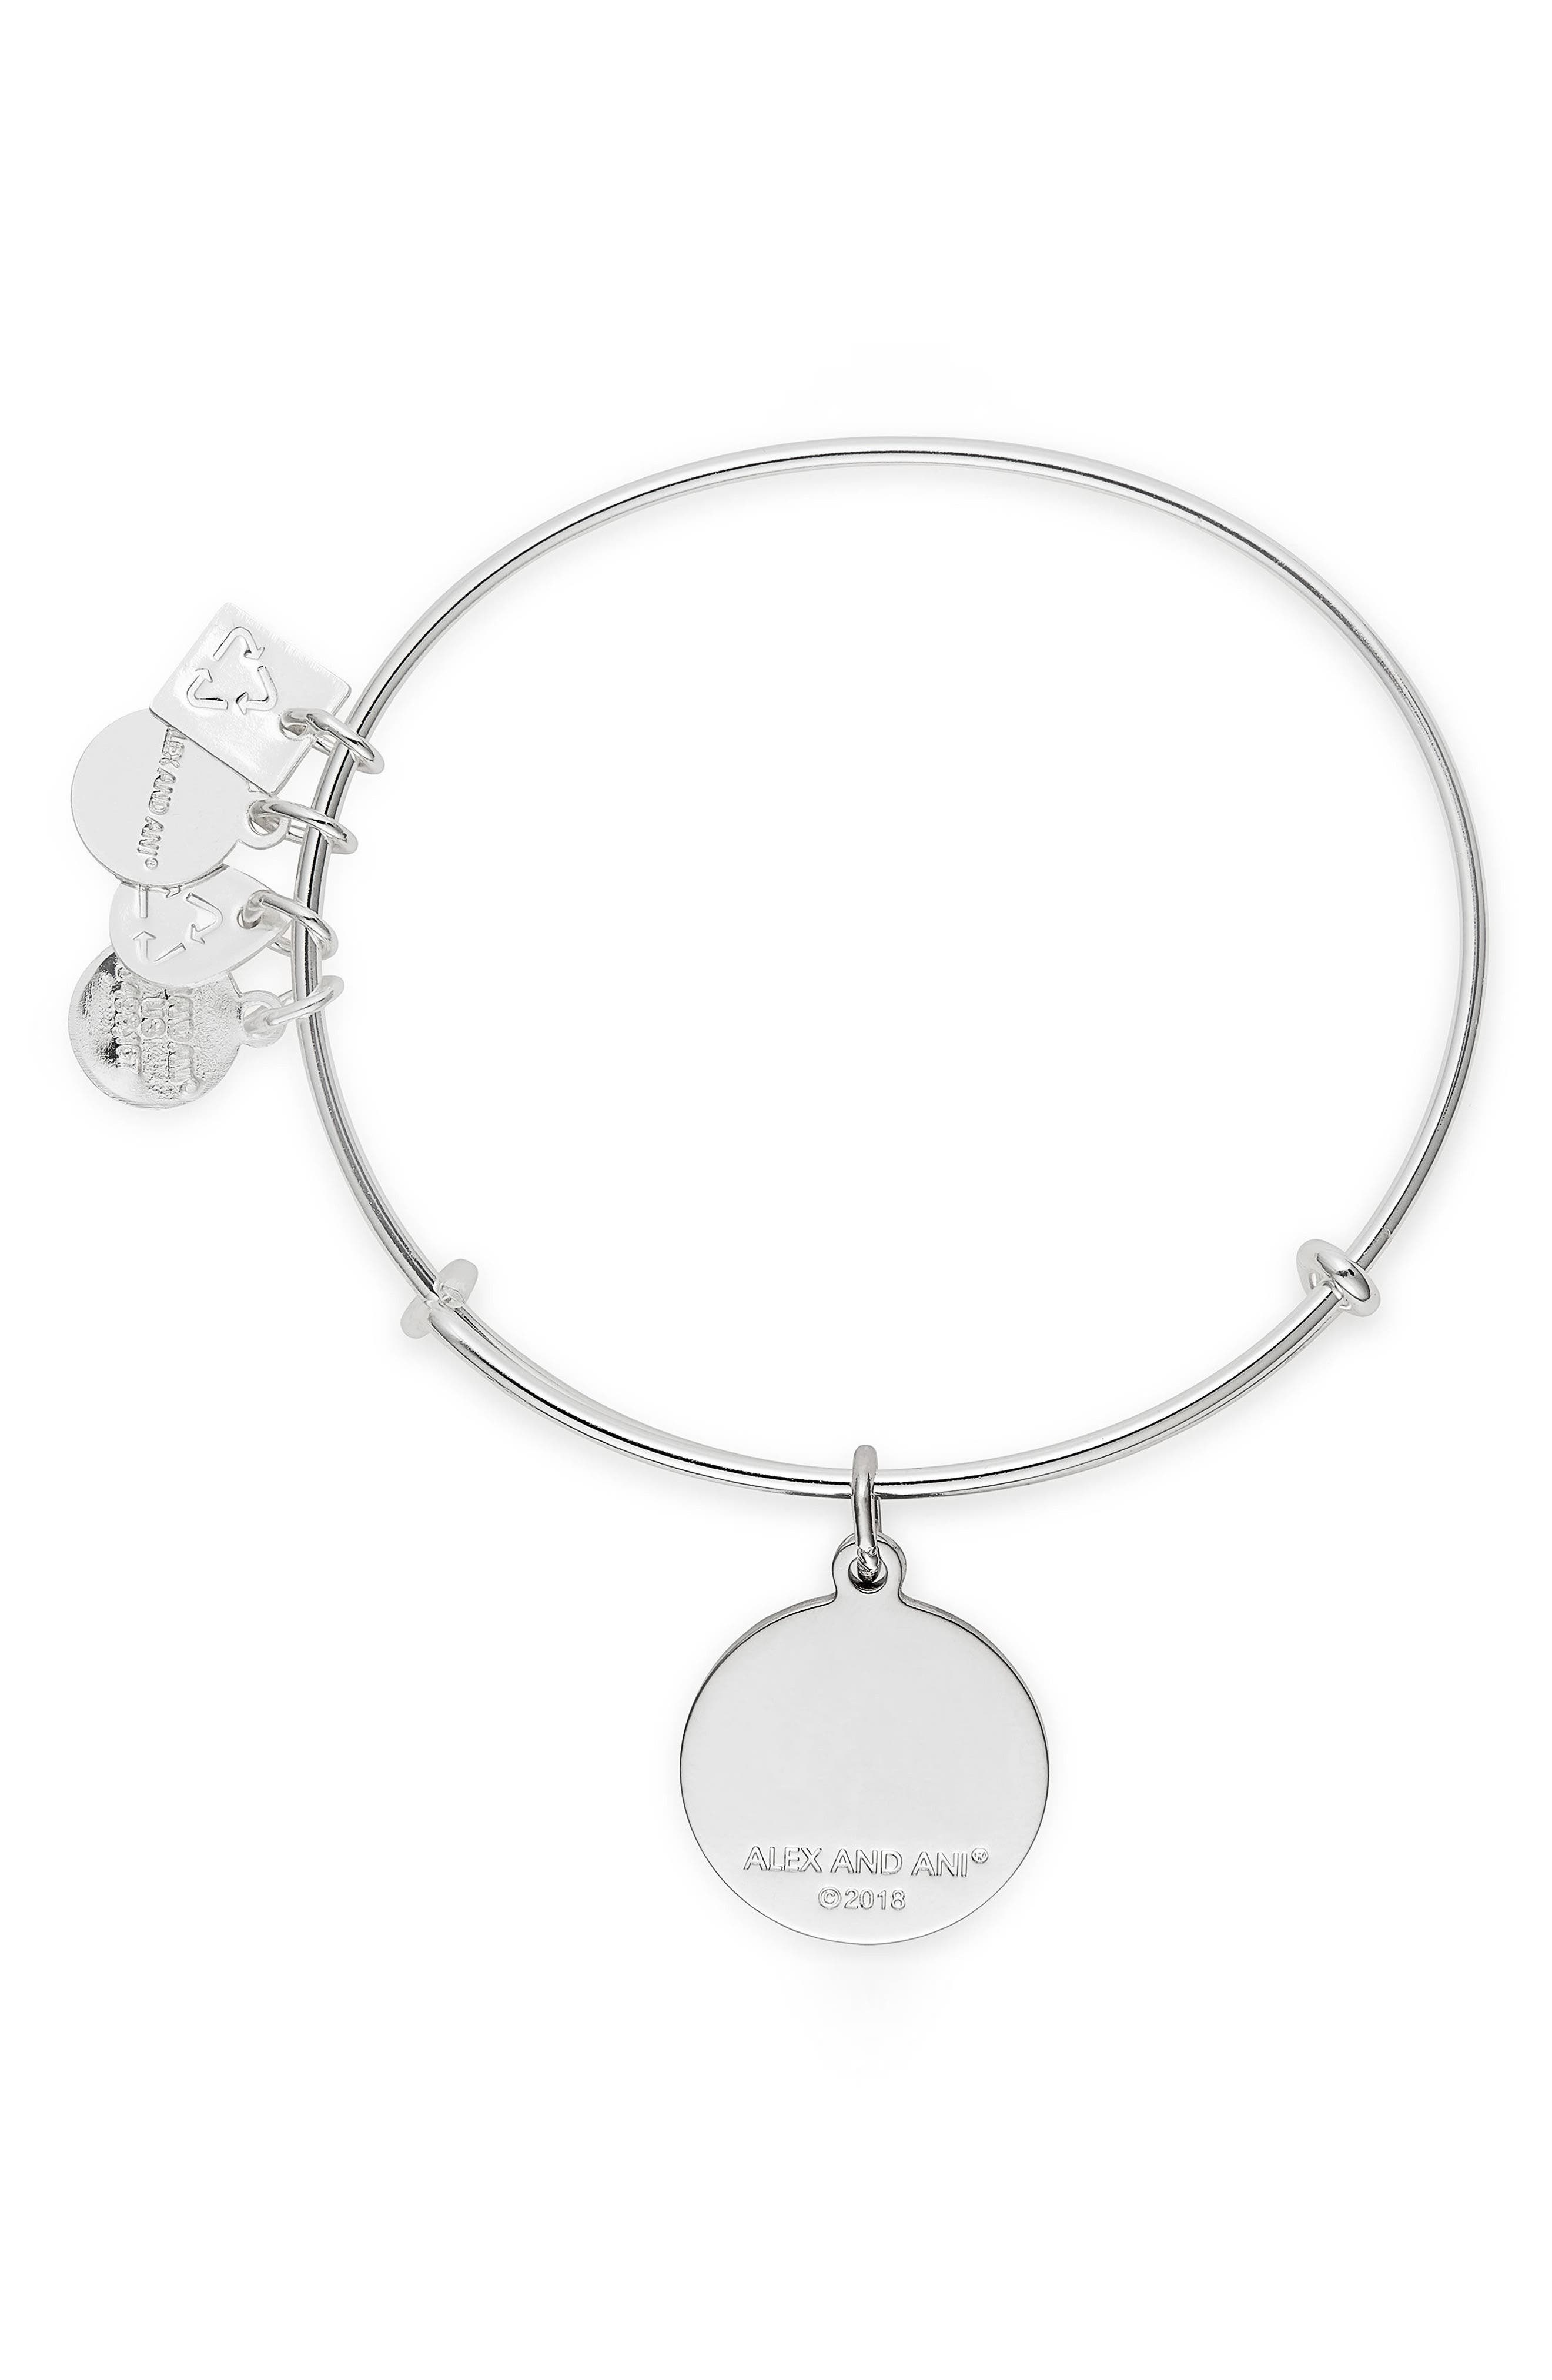 Kindred One Step at a Time Bangle,                             Alternate thumbnail 2, color,                             040